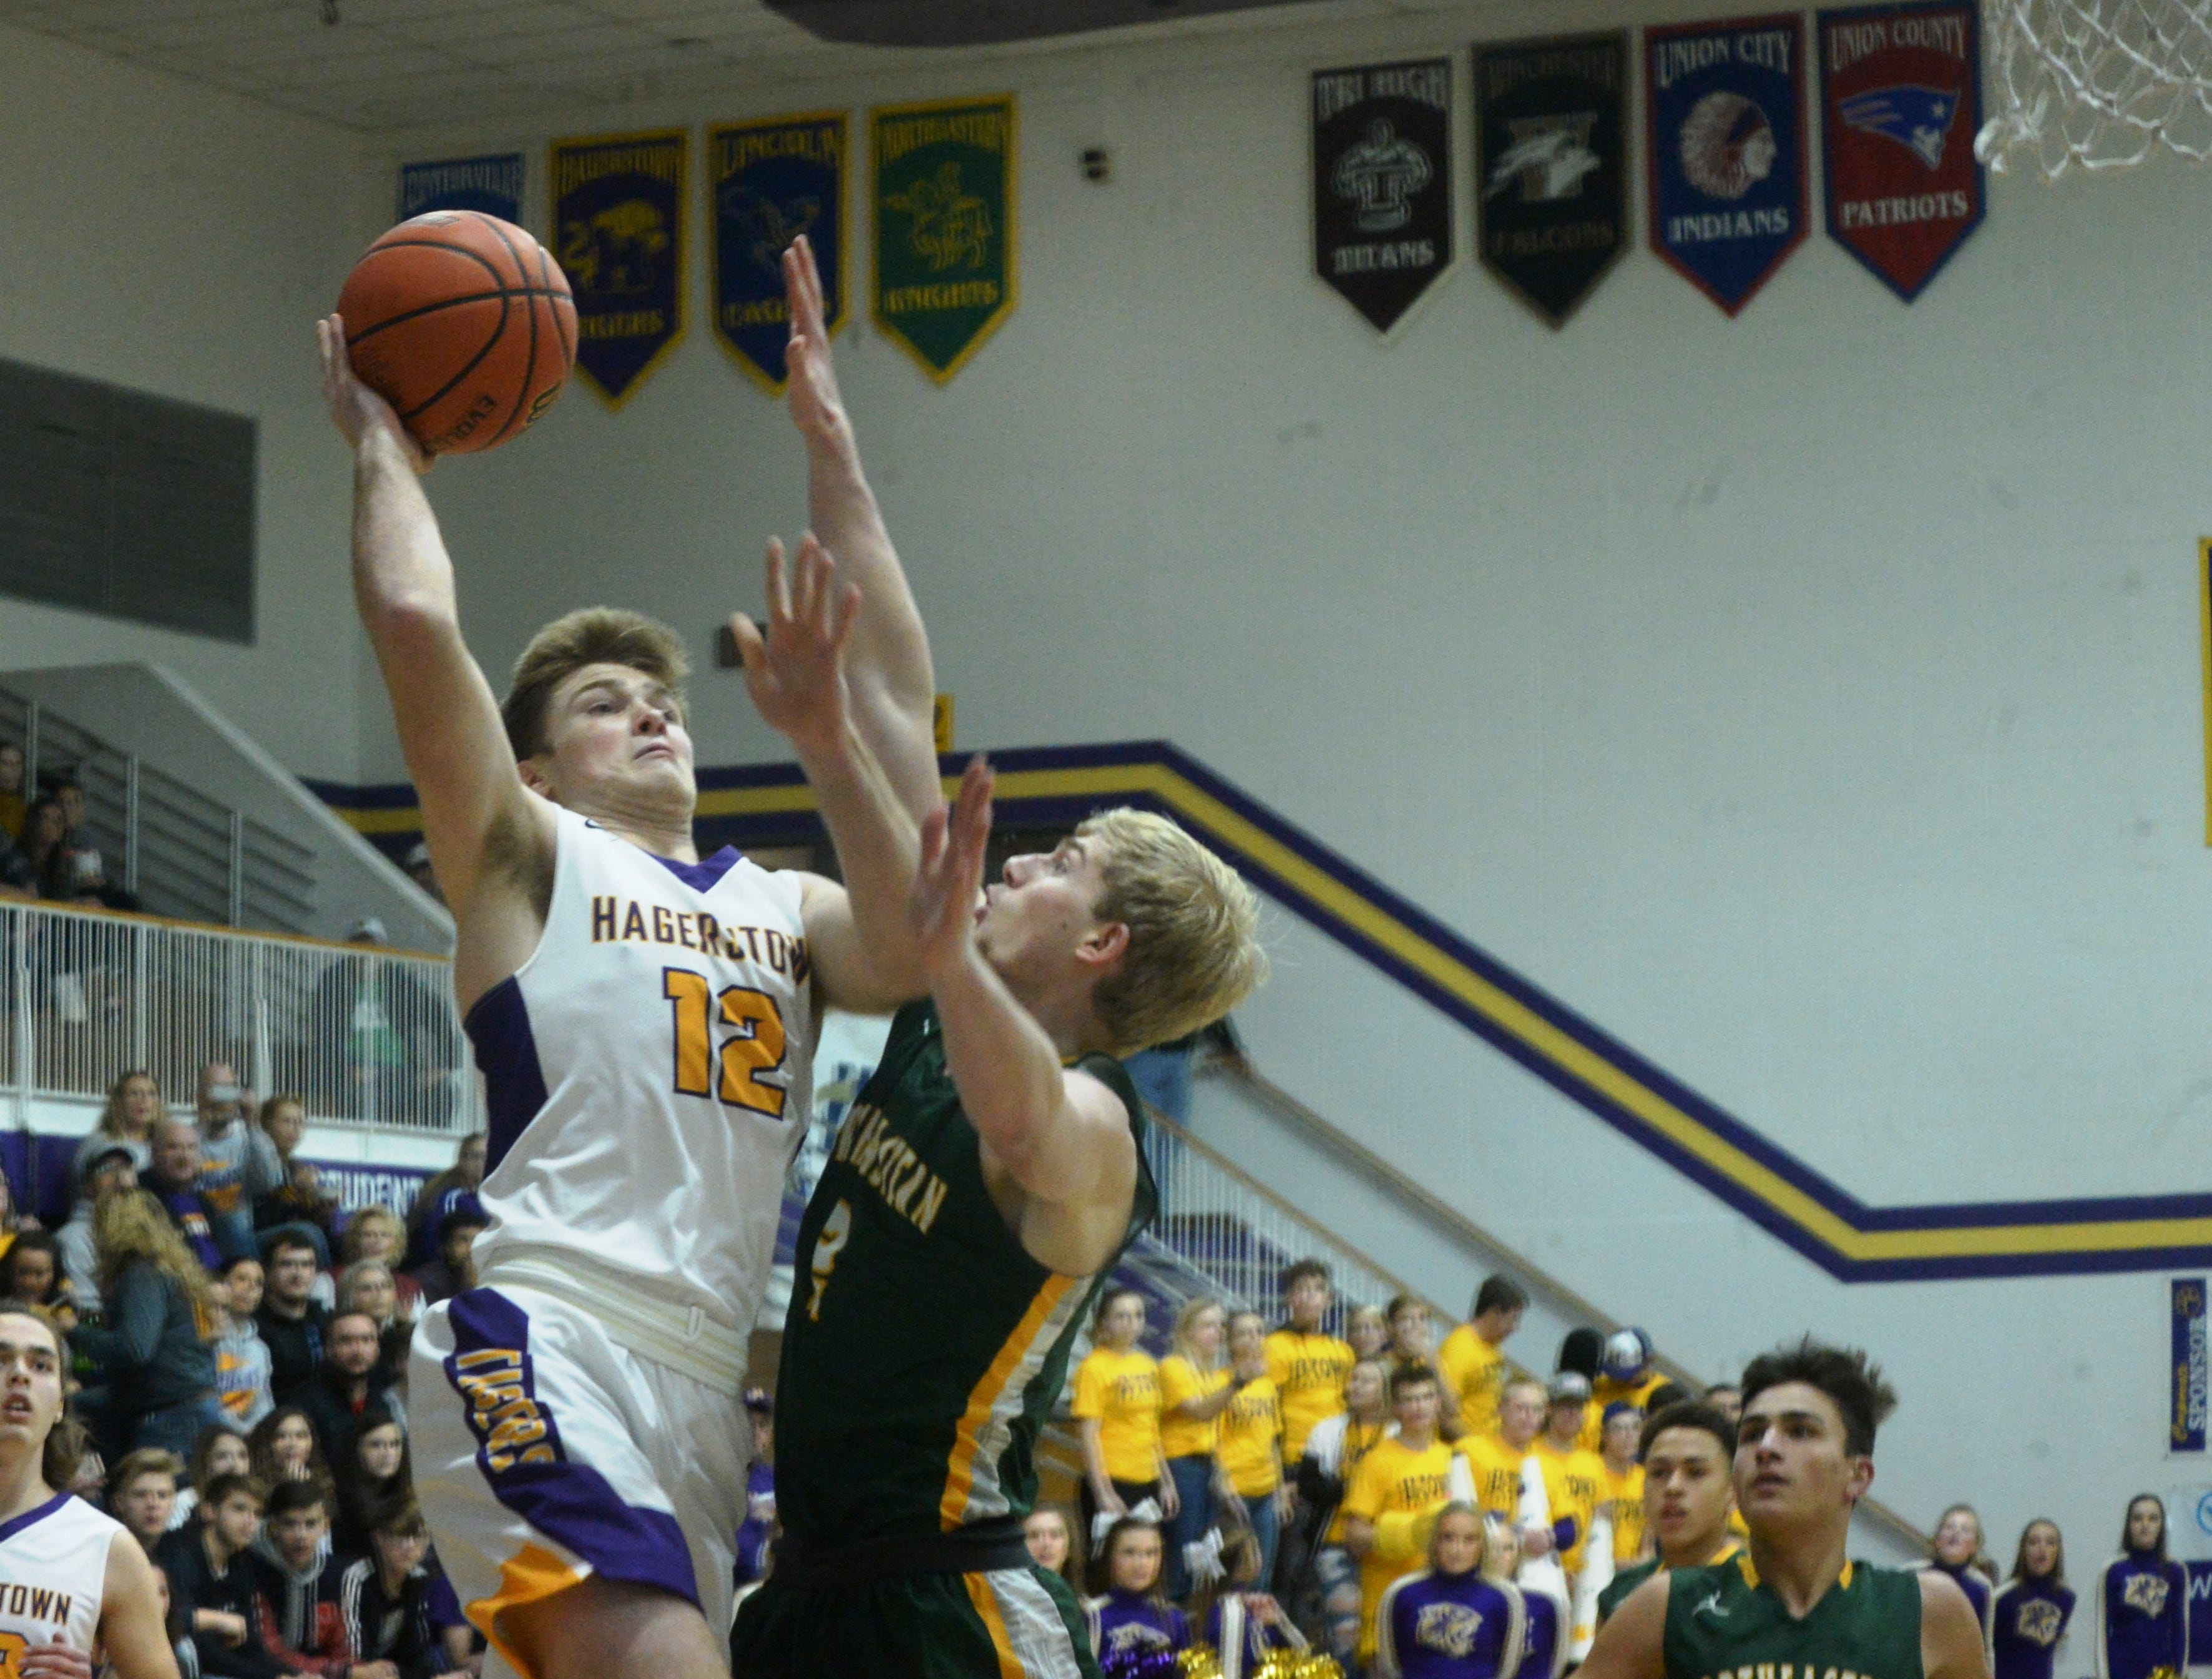 Hagerstown's Cody Swimm (12) shoots over Northeastern's Carter Lumpkin during the Wayne County boys basketball championship at Hagerstown Saturday, Jan. 5, 2019. Hagerstown defeated Northeastern 37-35 to win the girls' title, and Northeastern beat Hagerstown 60-49 in the boys championship.